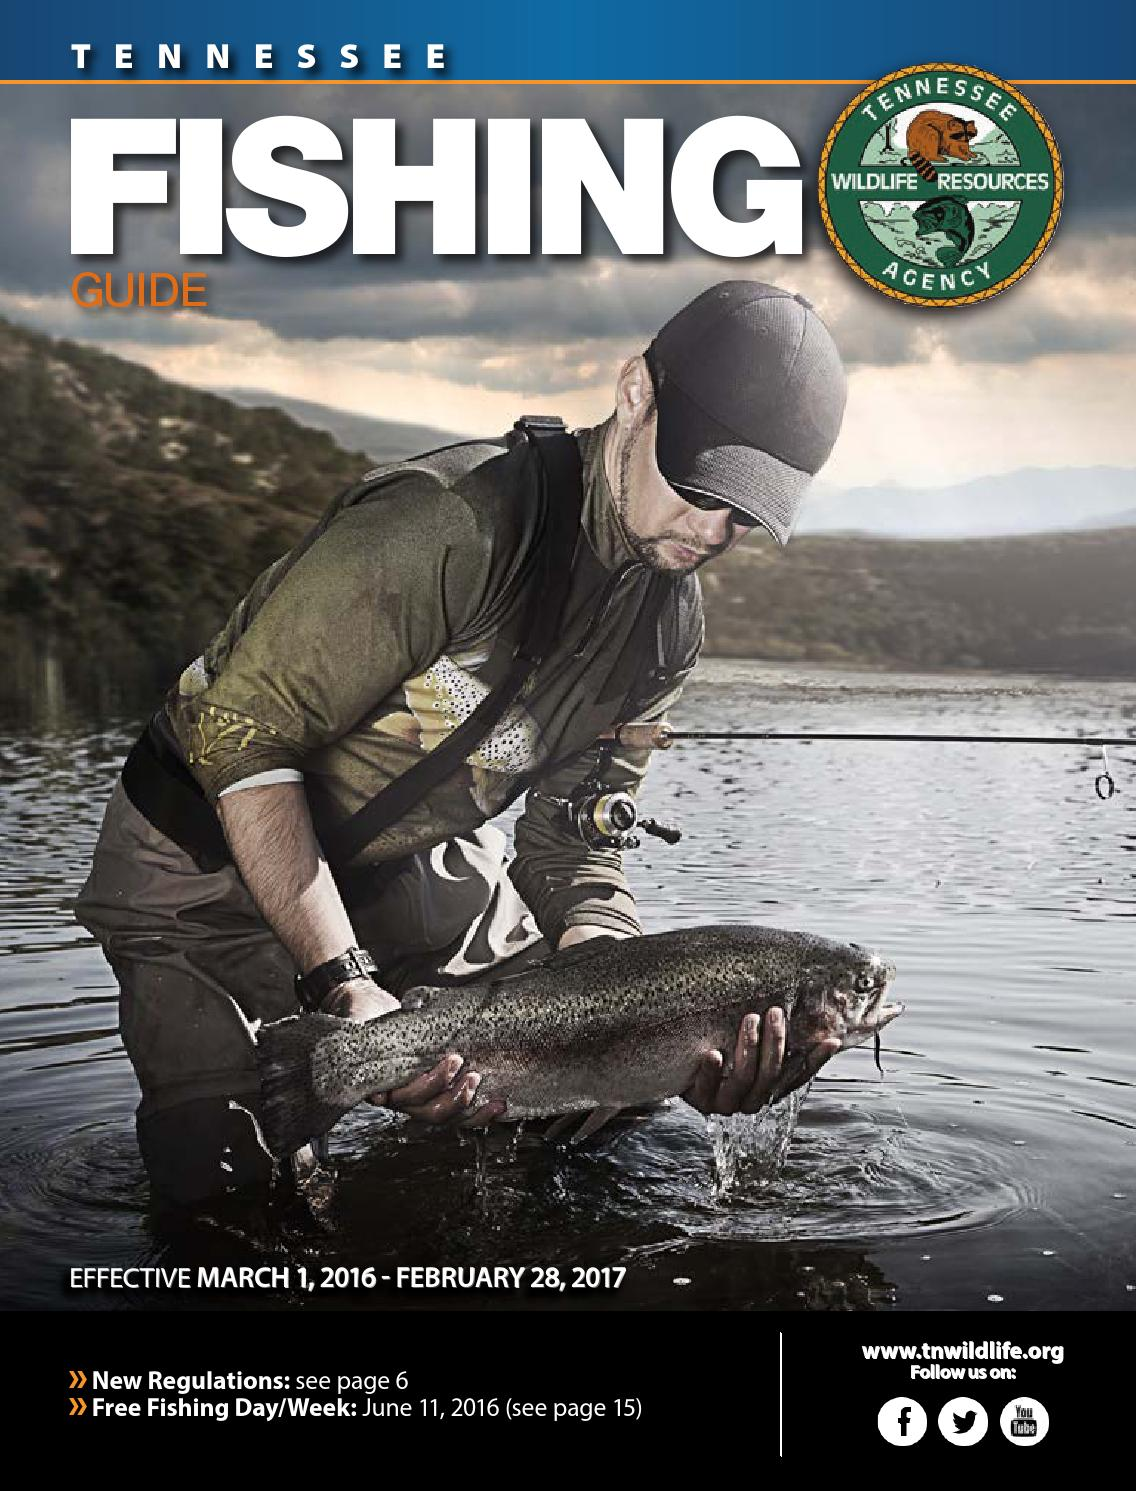 Tn fishing guide 2016 2017 by bingham group page 1 issuu for Tennessee fishing guide